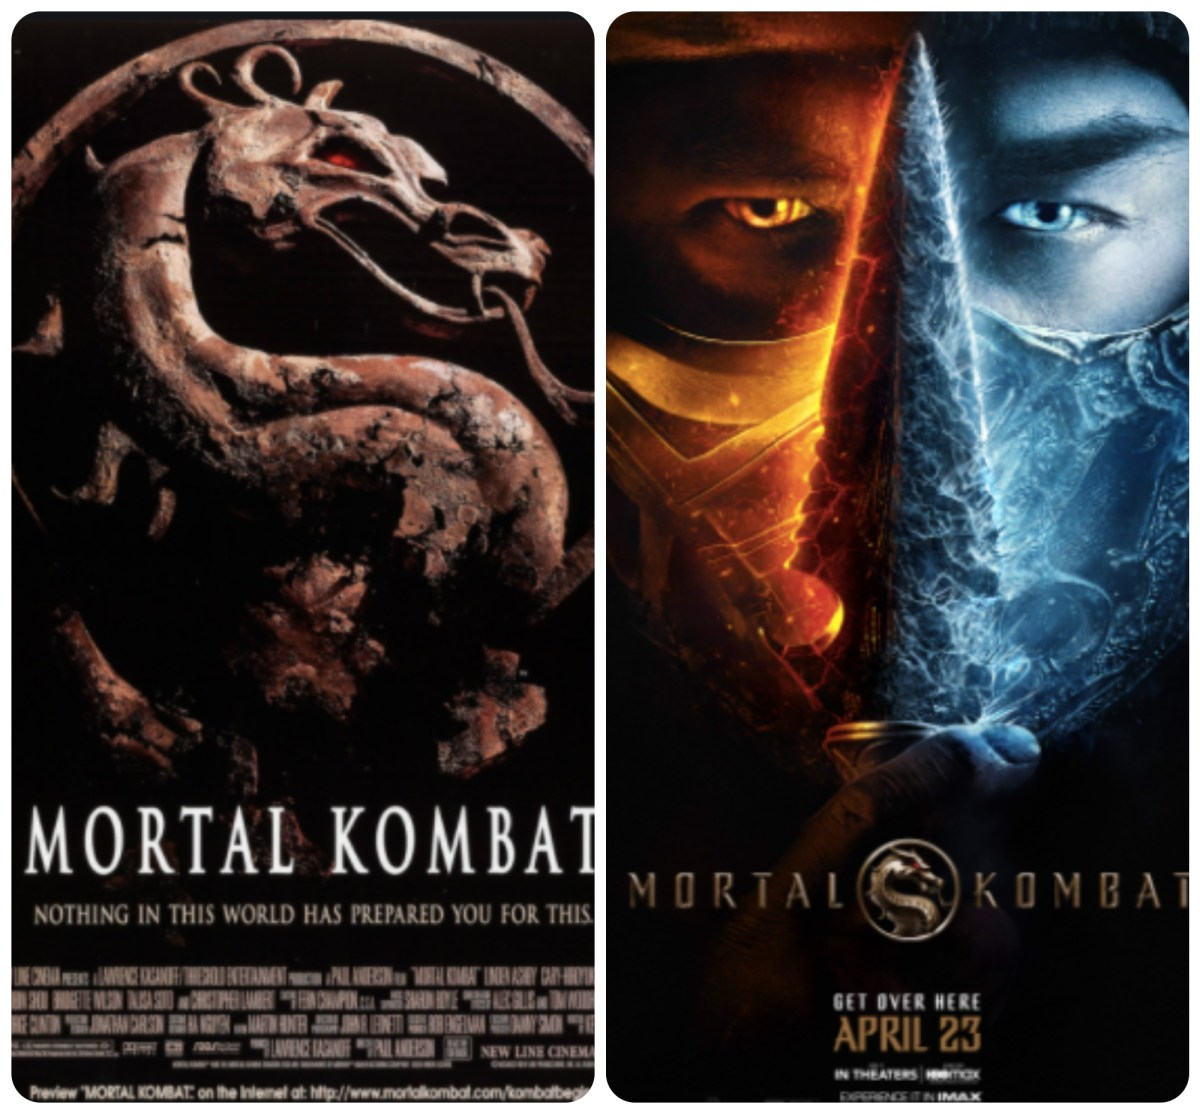 Double Feature with the Fishers, new podcast episode: MORTAL KOMBAT and MORTAL KOMBAT